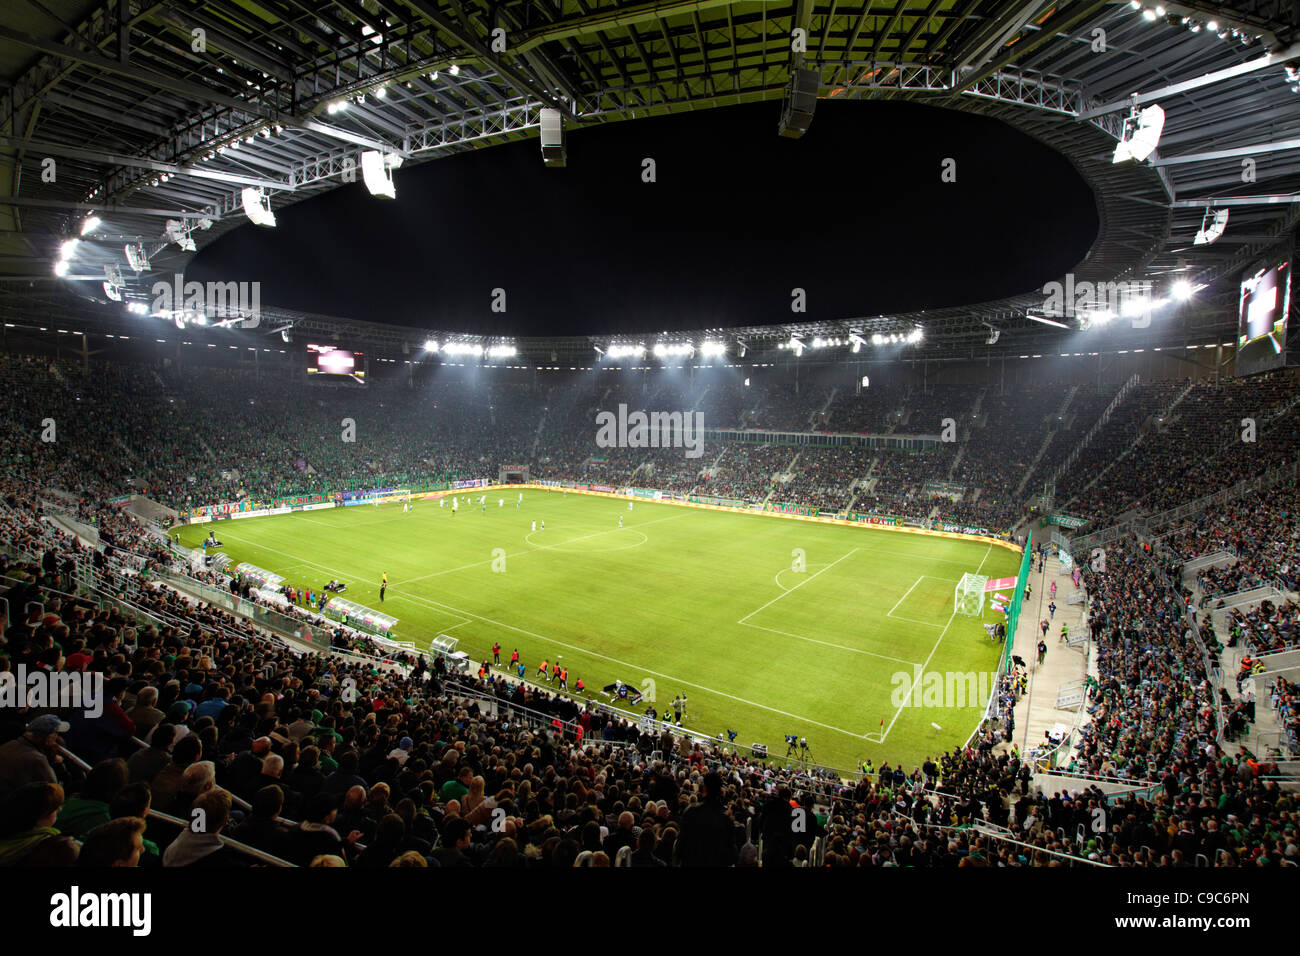 new stadium in Wroclaw, Poland - Stock Image